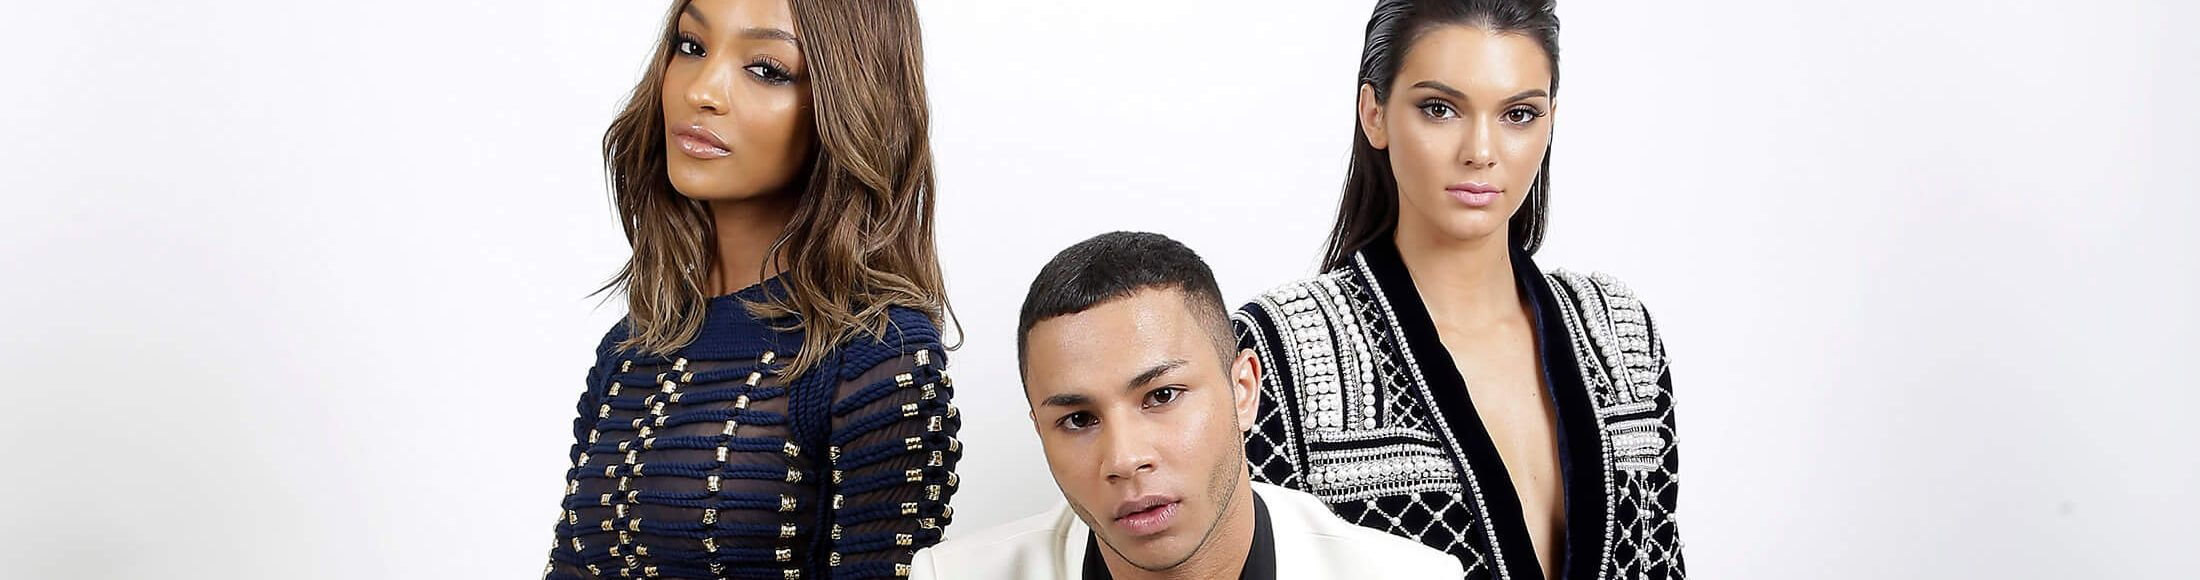 How to Shop the Balmain x H&M Collection